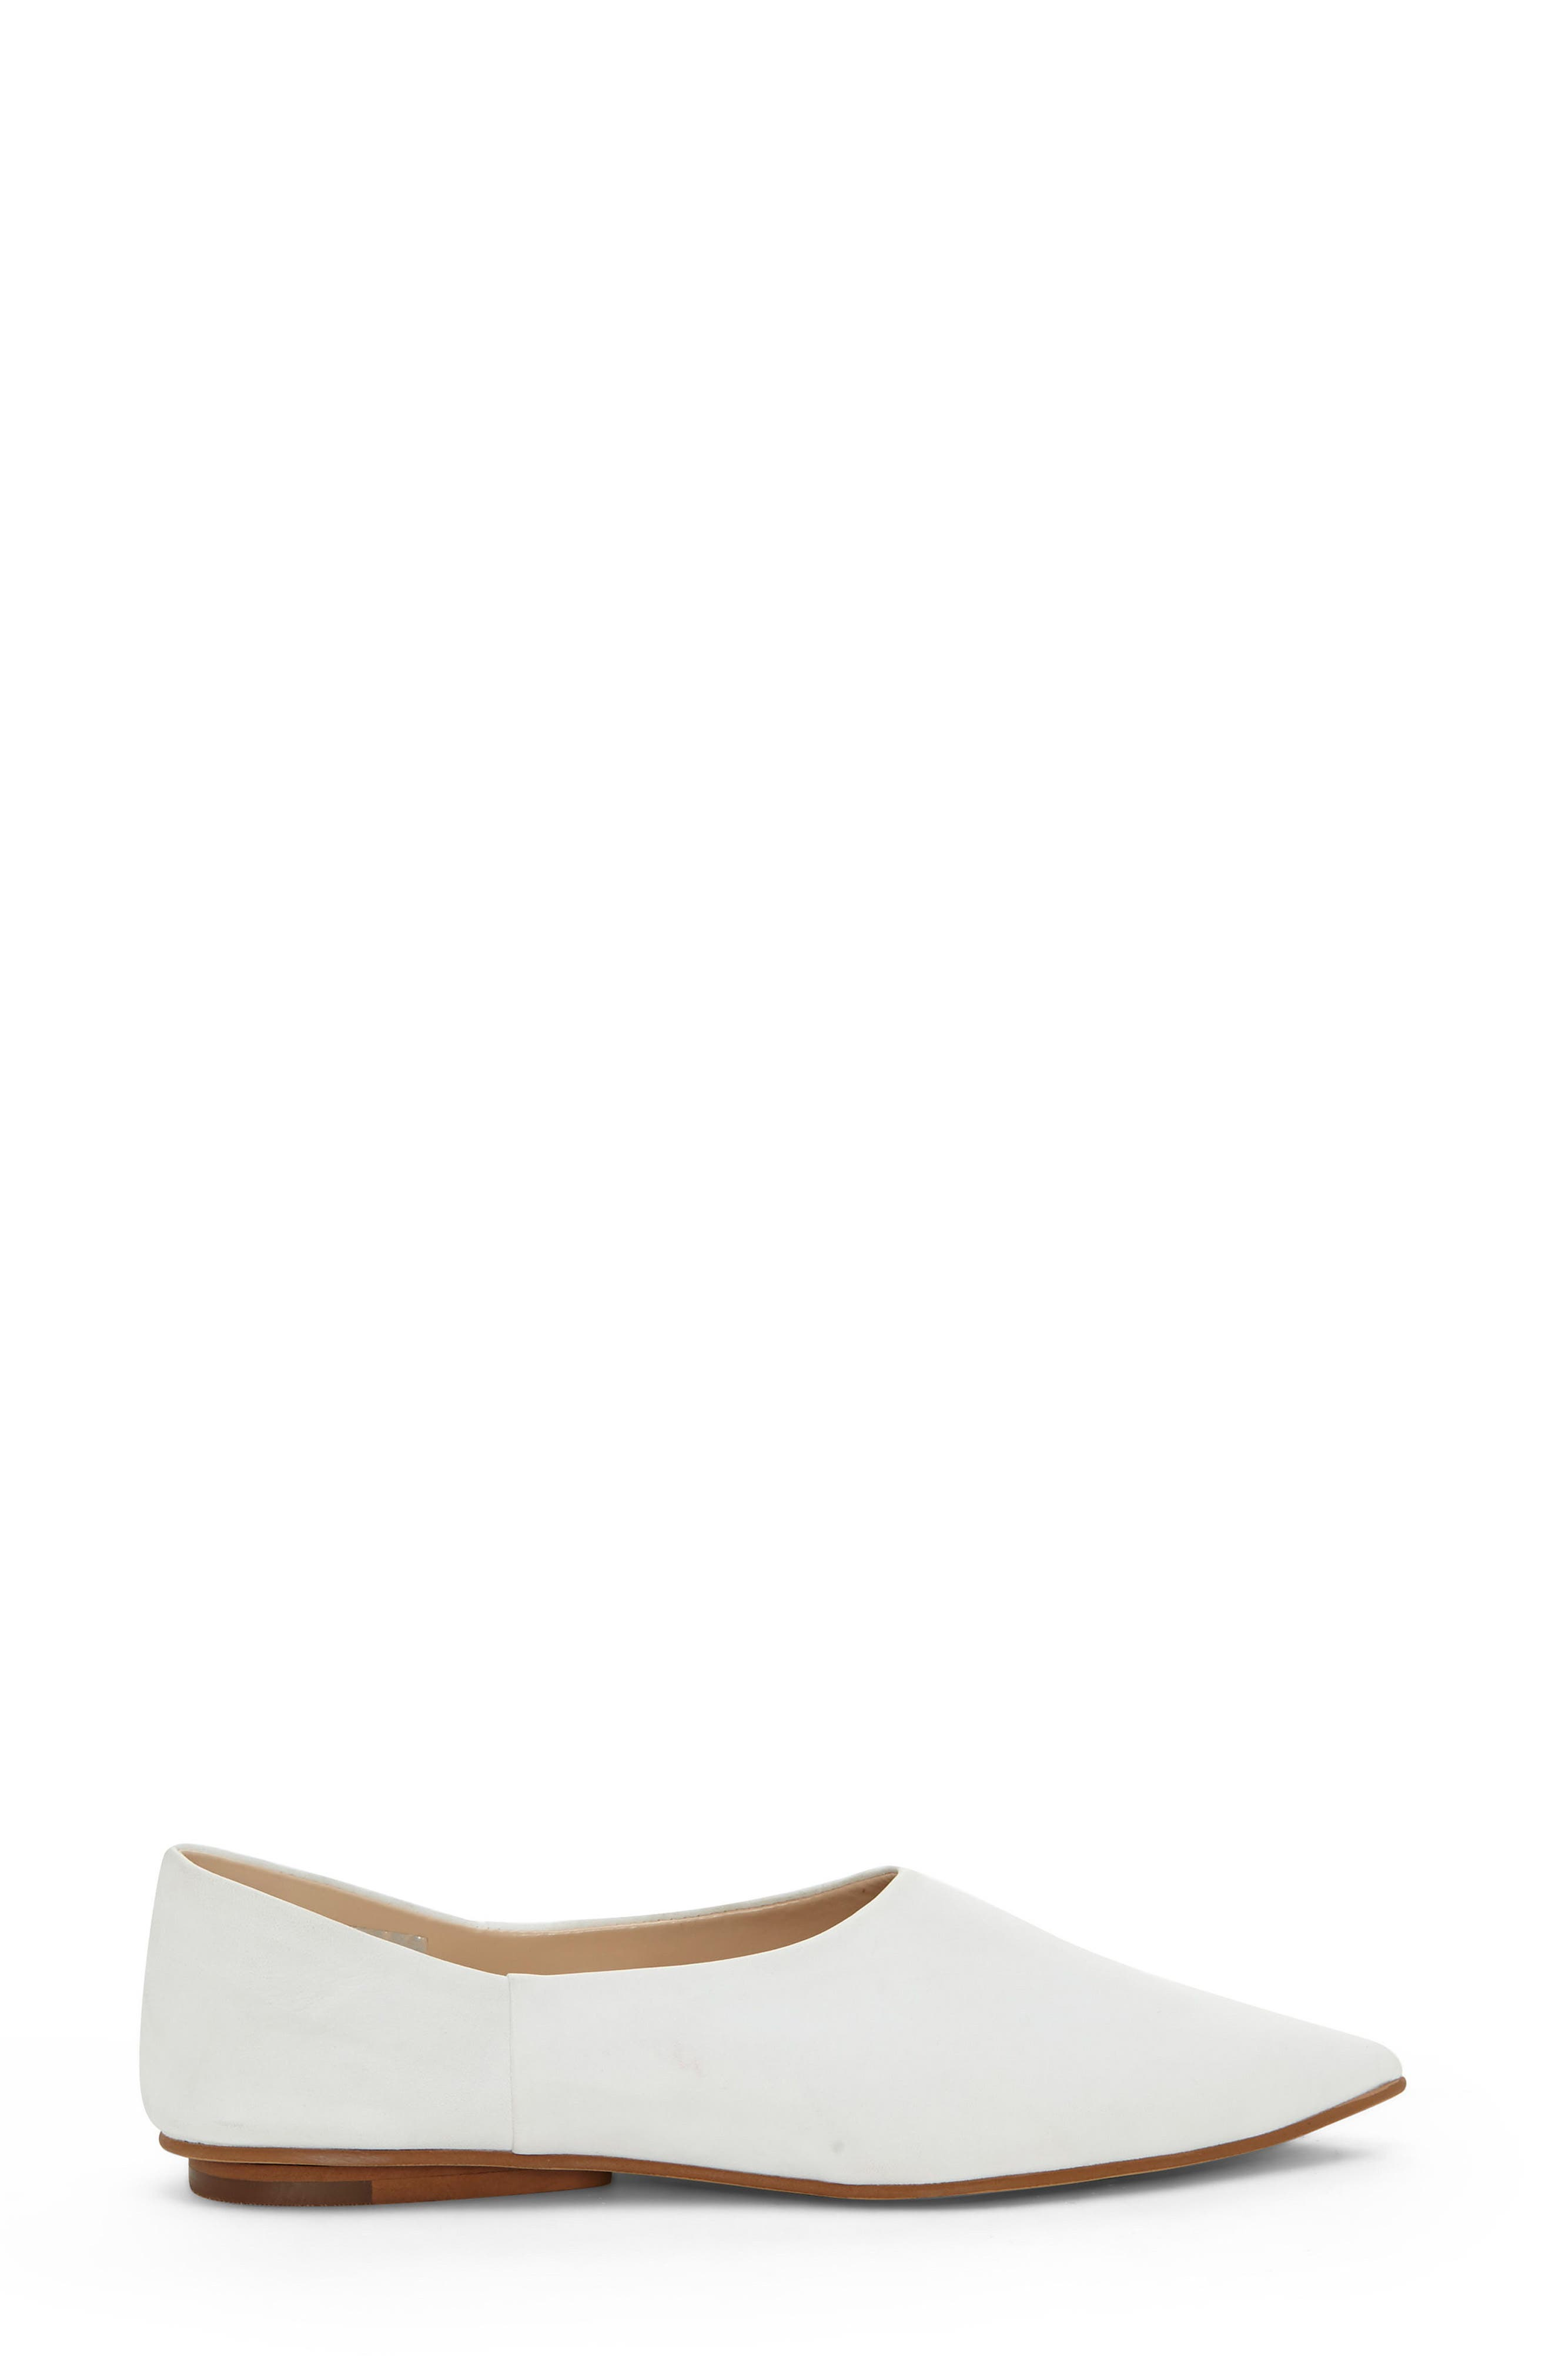 Stanta Pointy Toe Flat,                             Alternate thumbnail 3, color,                             Pure White Leather